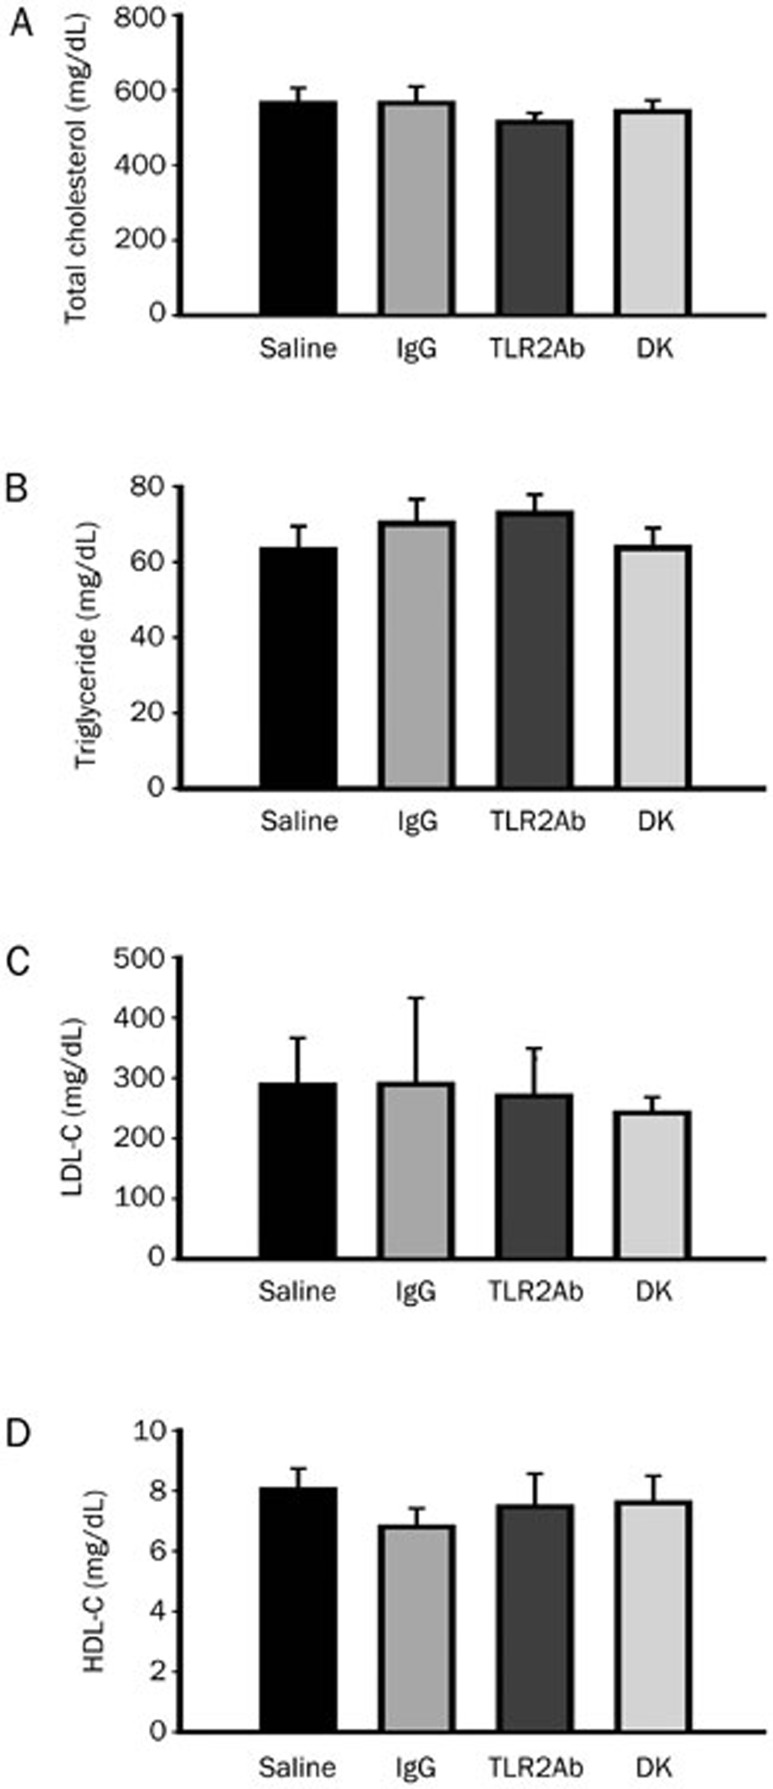 Blocking TLR2 activity does not affect plasma lipid levels. The total cholesterol (A), triglyceride (B), <t>LDL-C</t> (C), and <t>HDL-C</t> (D) levels were determined in 58-week-old ApoE −/− mice treated with saline, IgG or a TLR2ab iv for 18 weeks and in TLR2-deficient ApoE −/− mice (DK) fed a chow diet. The data are shown as the mean±SEM ( n =12 mice/group).